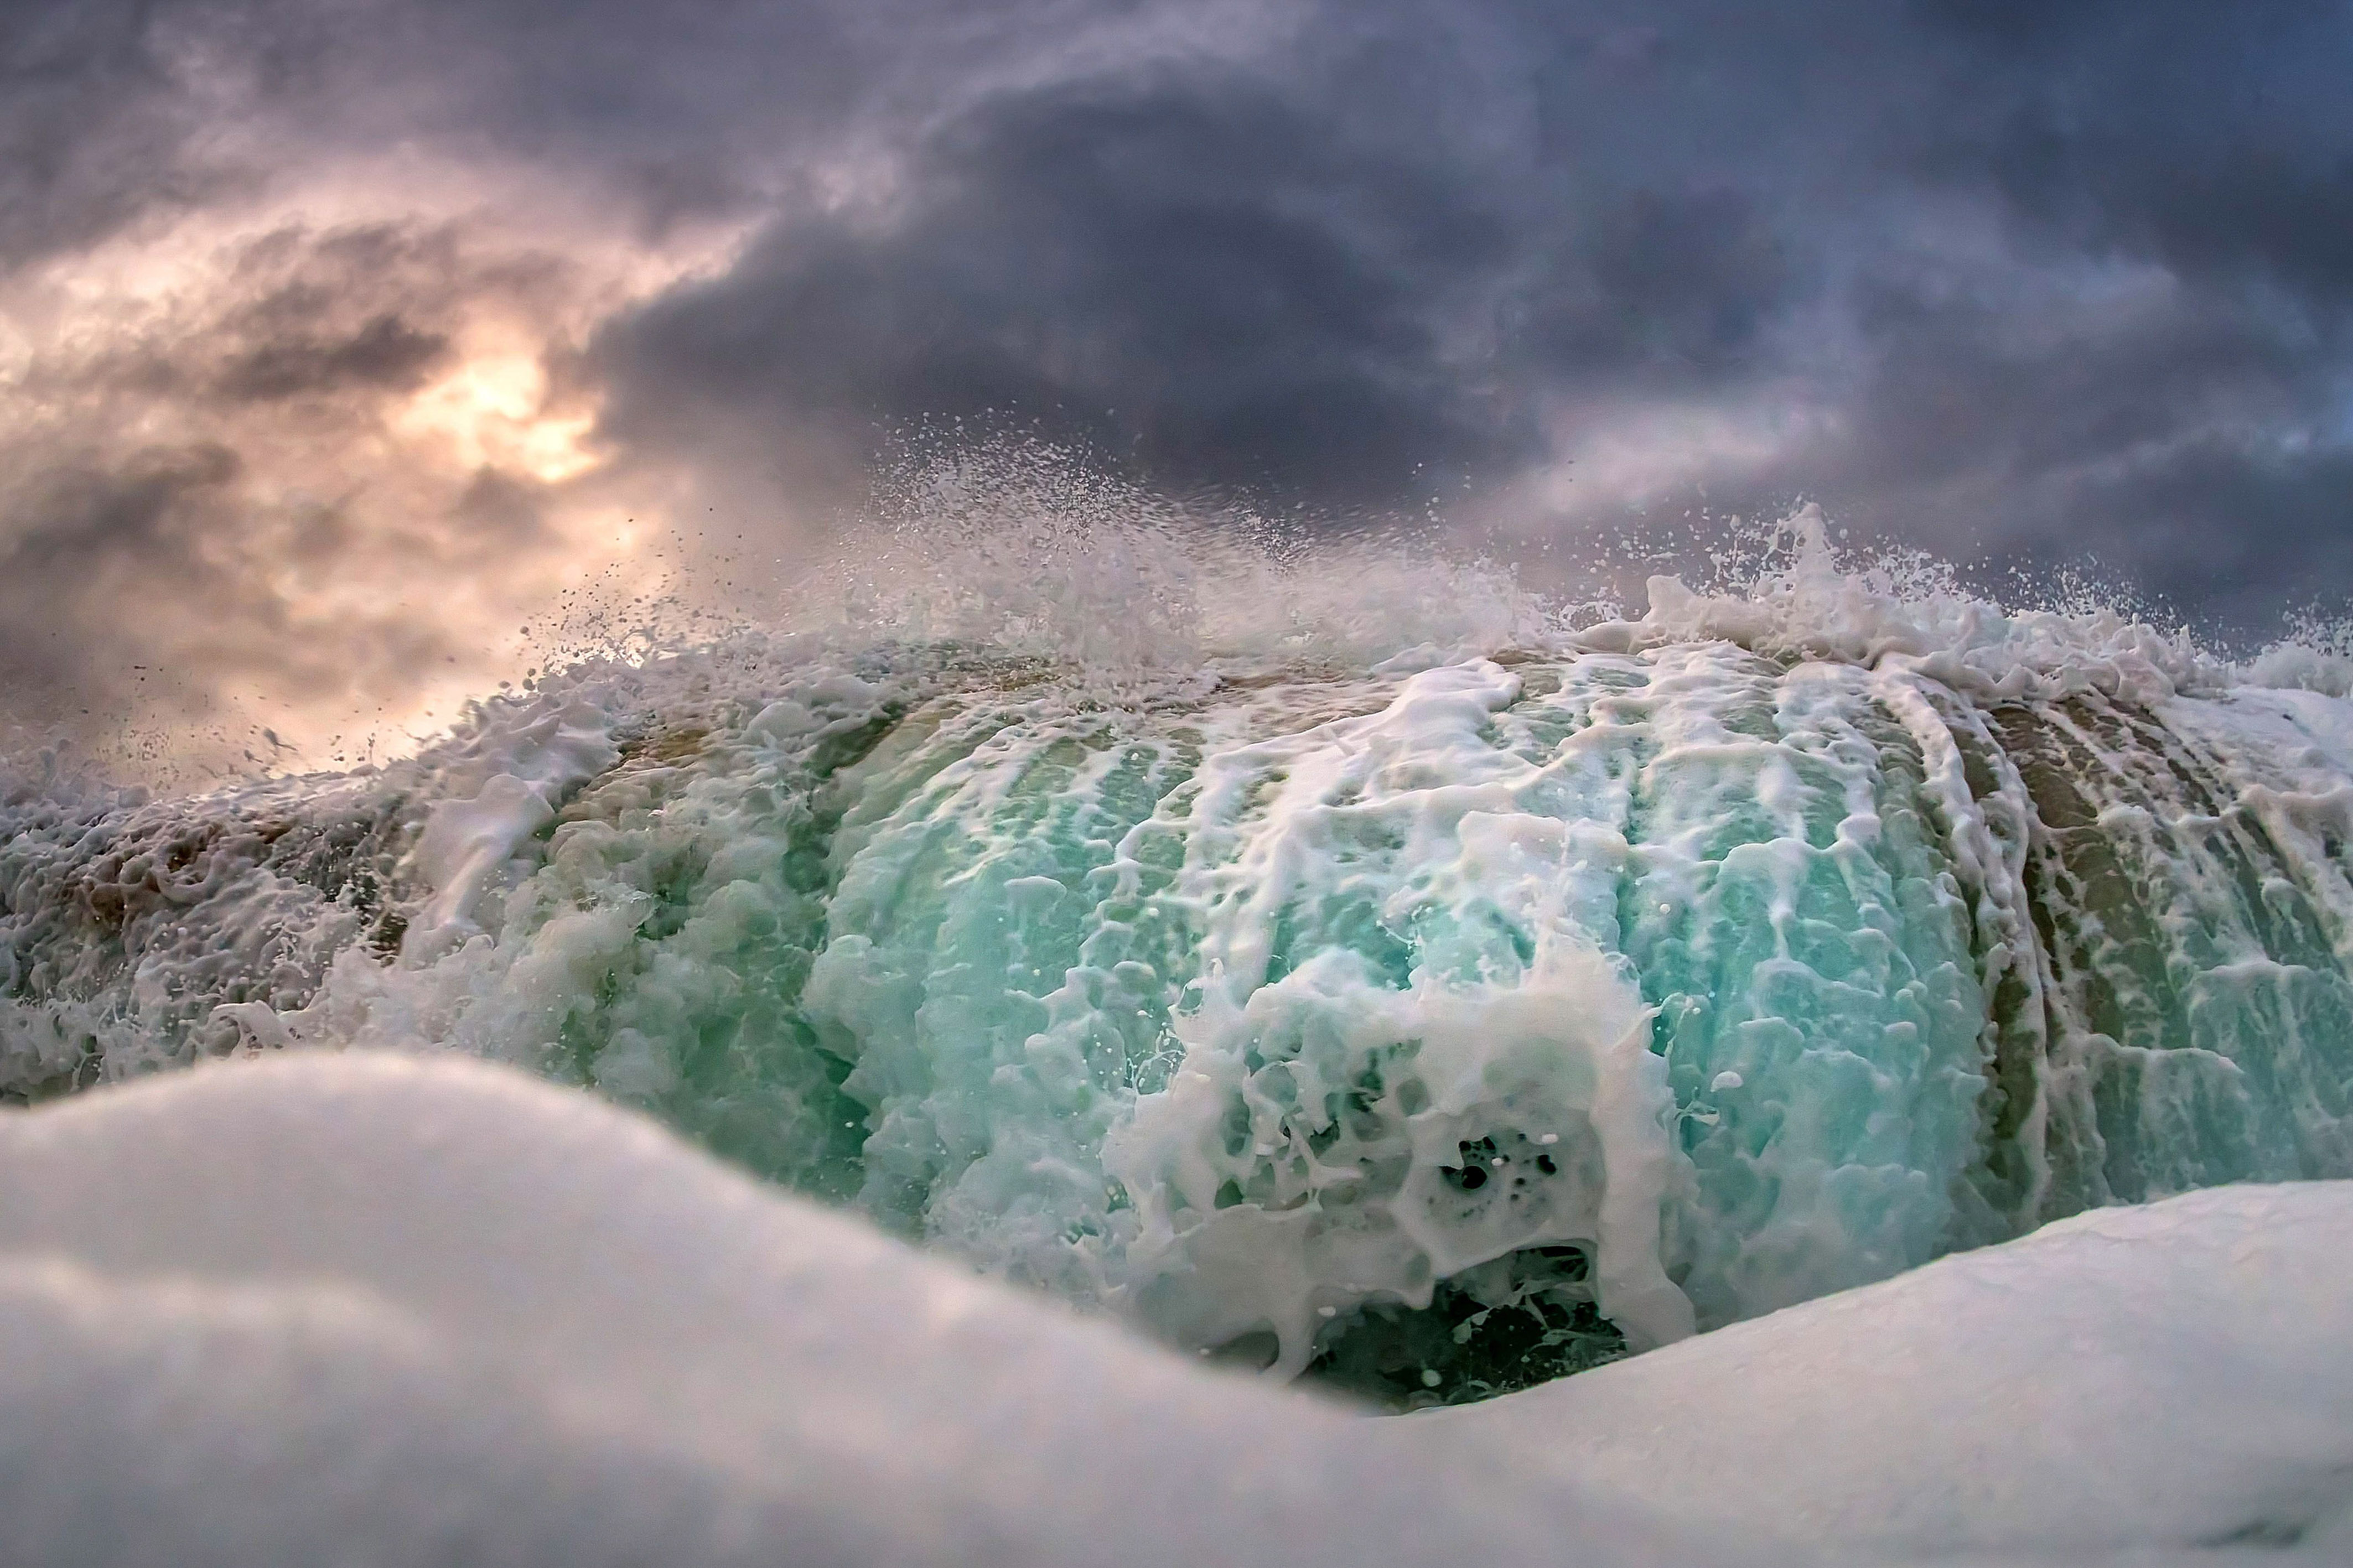 The Real Crash >> Stunning photos show stormy waves up-close ! - Caters News ...